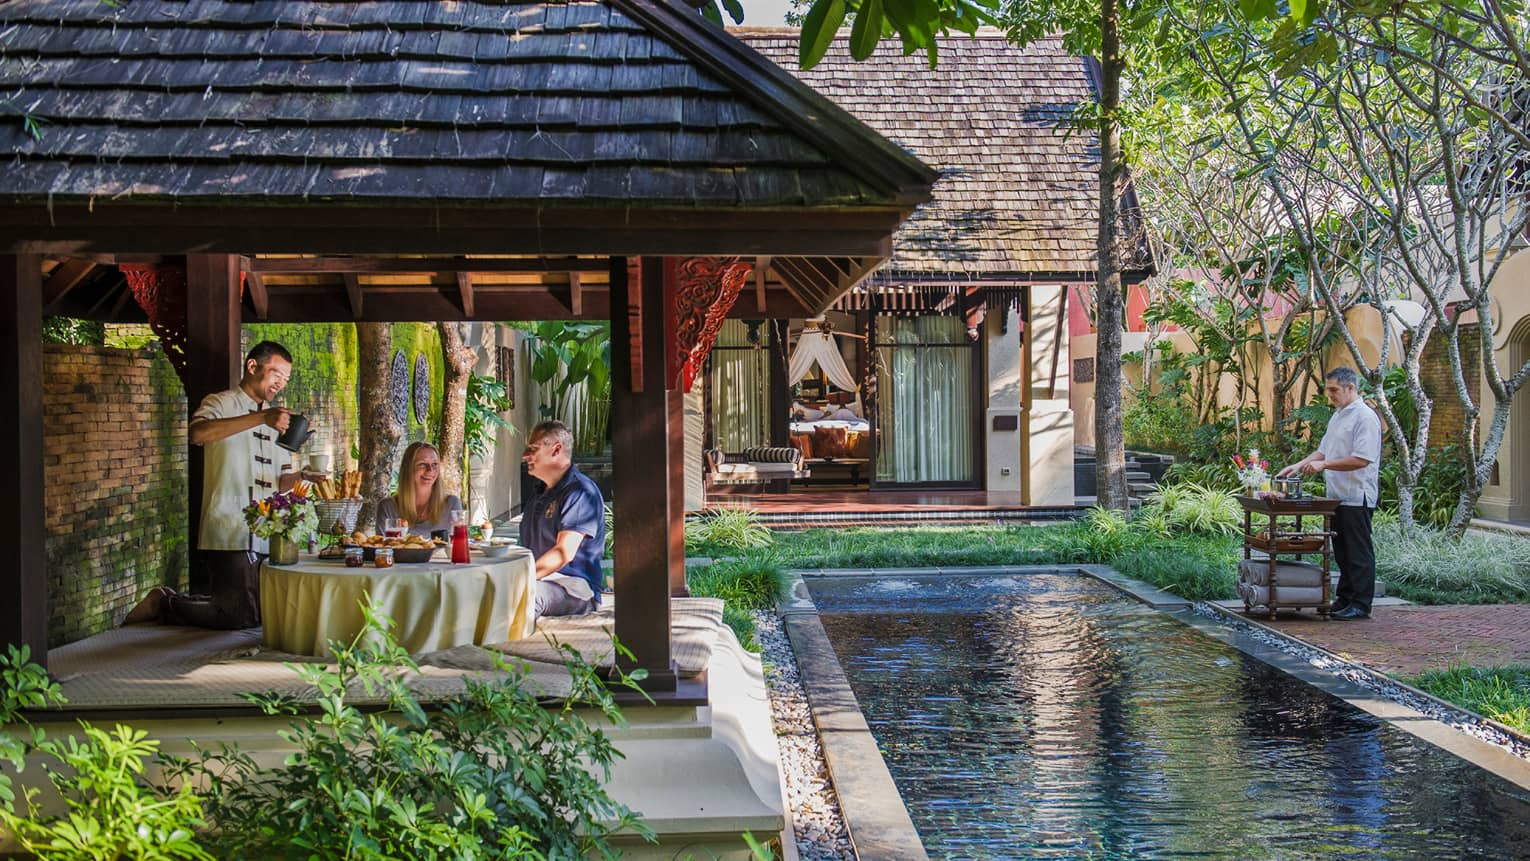 Hotel staff serve couple under dining gazebo by pond